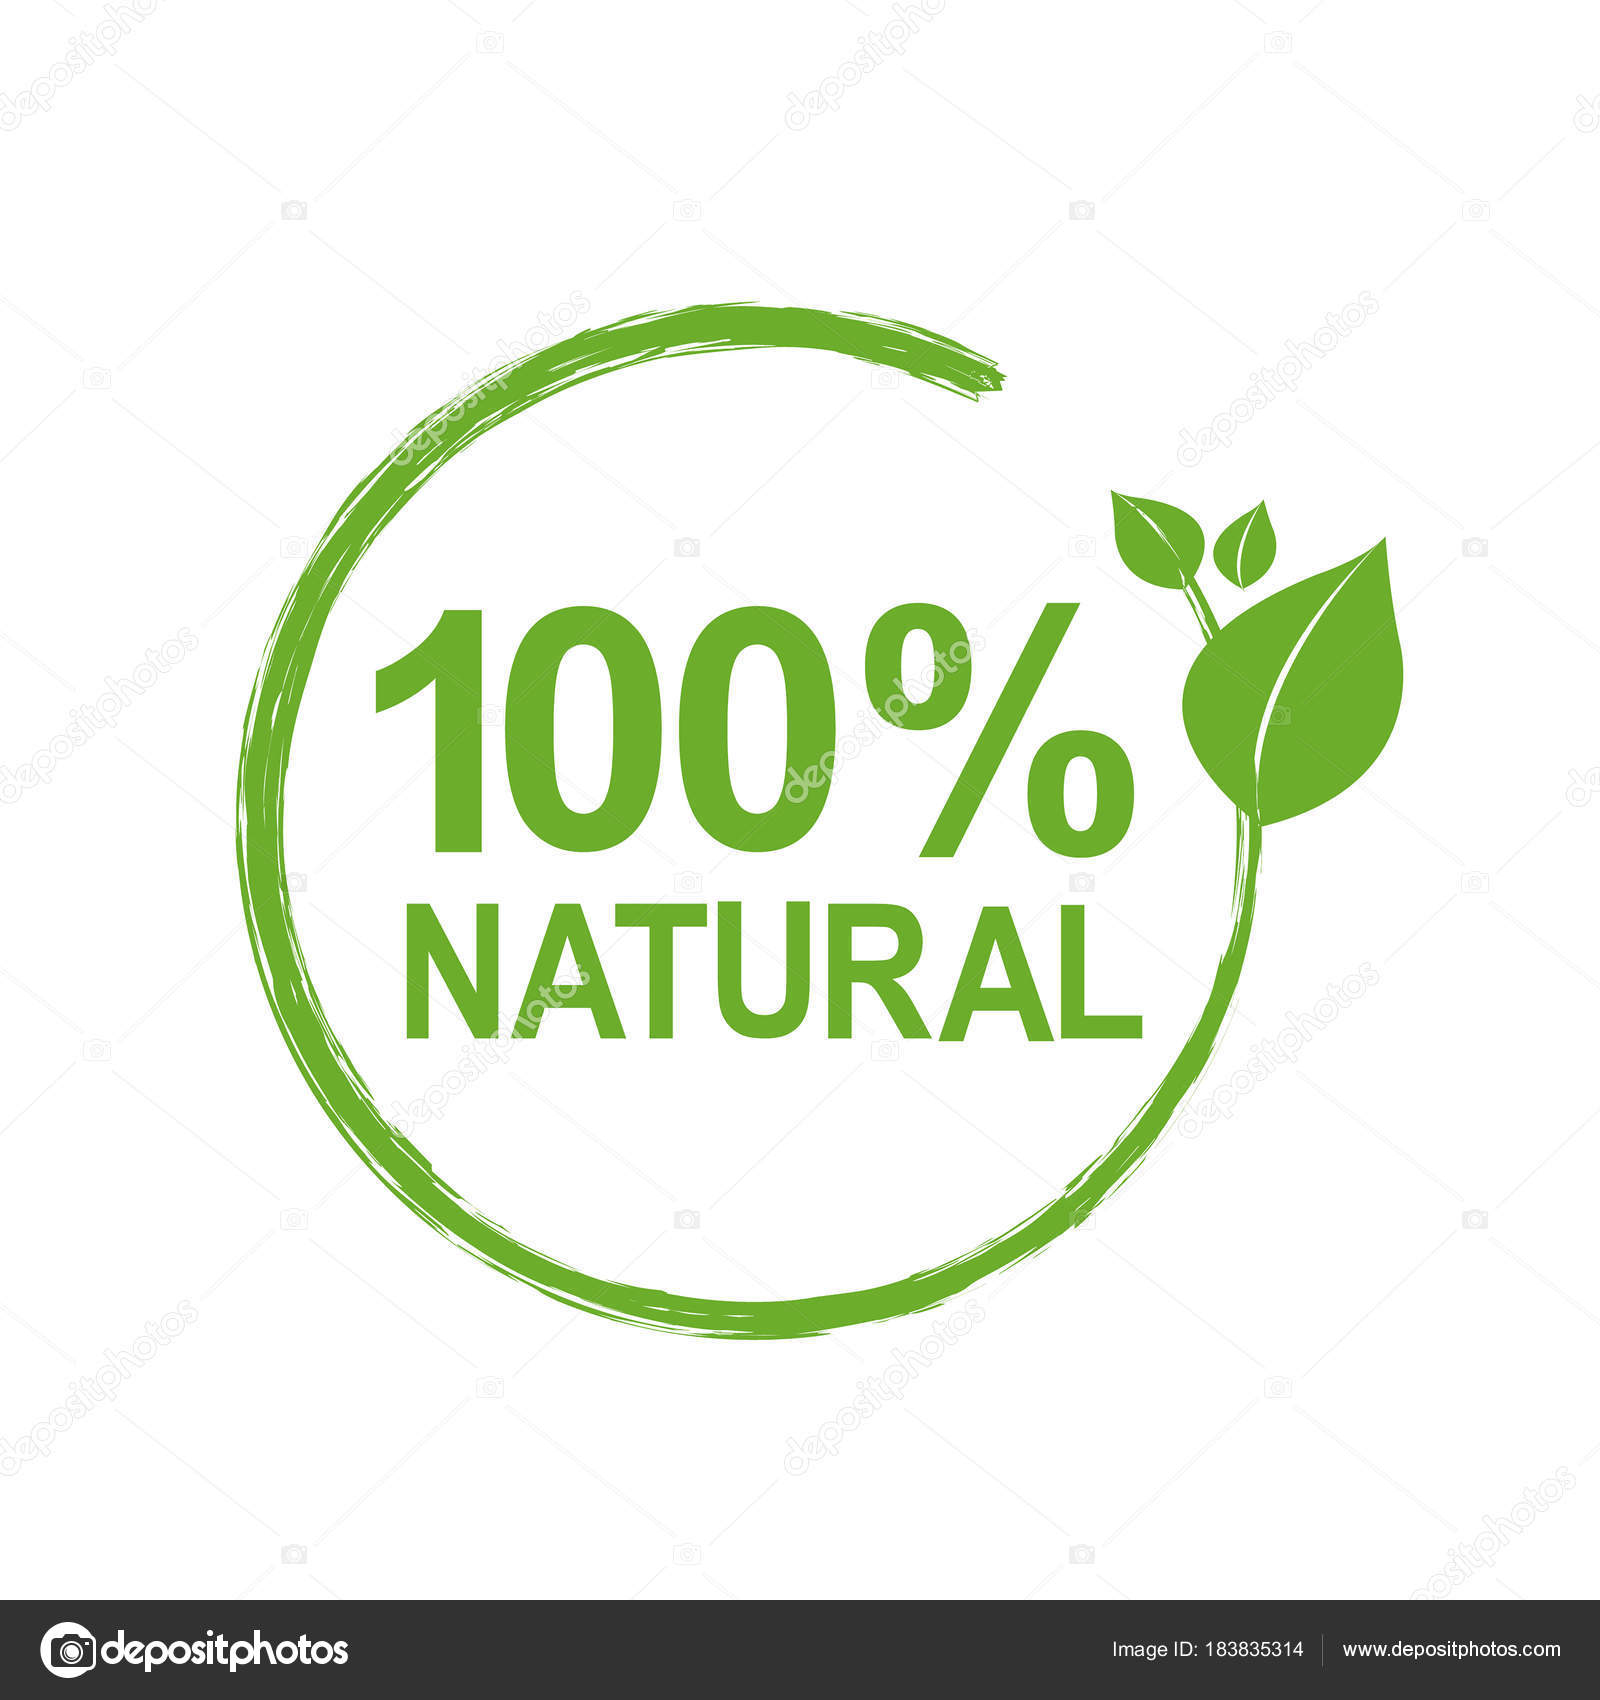 100 natural logo symbol vector illustration stock vector adamson 100 natural logo symbol vector illustration stock vector buycottarizona Image collections